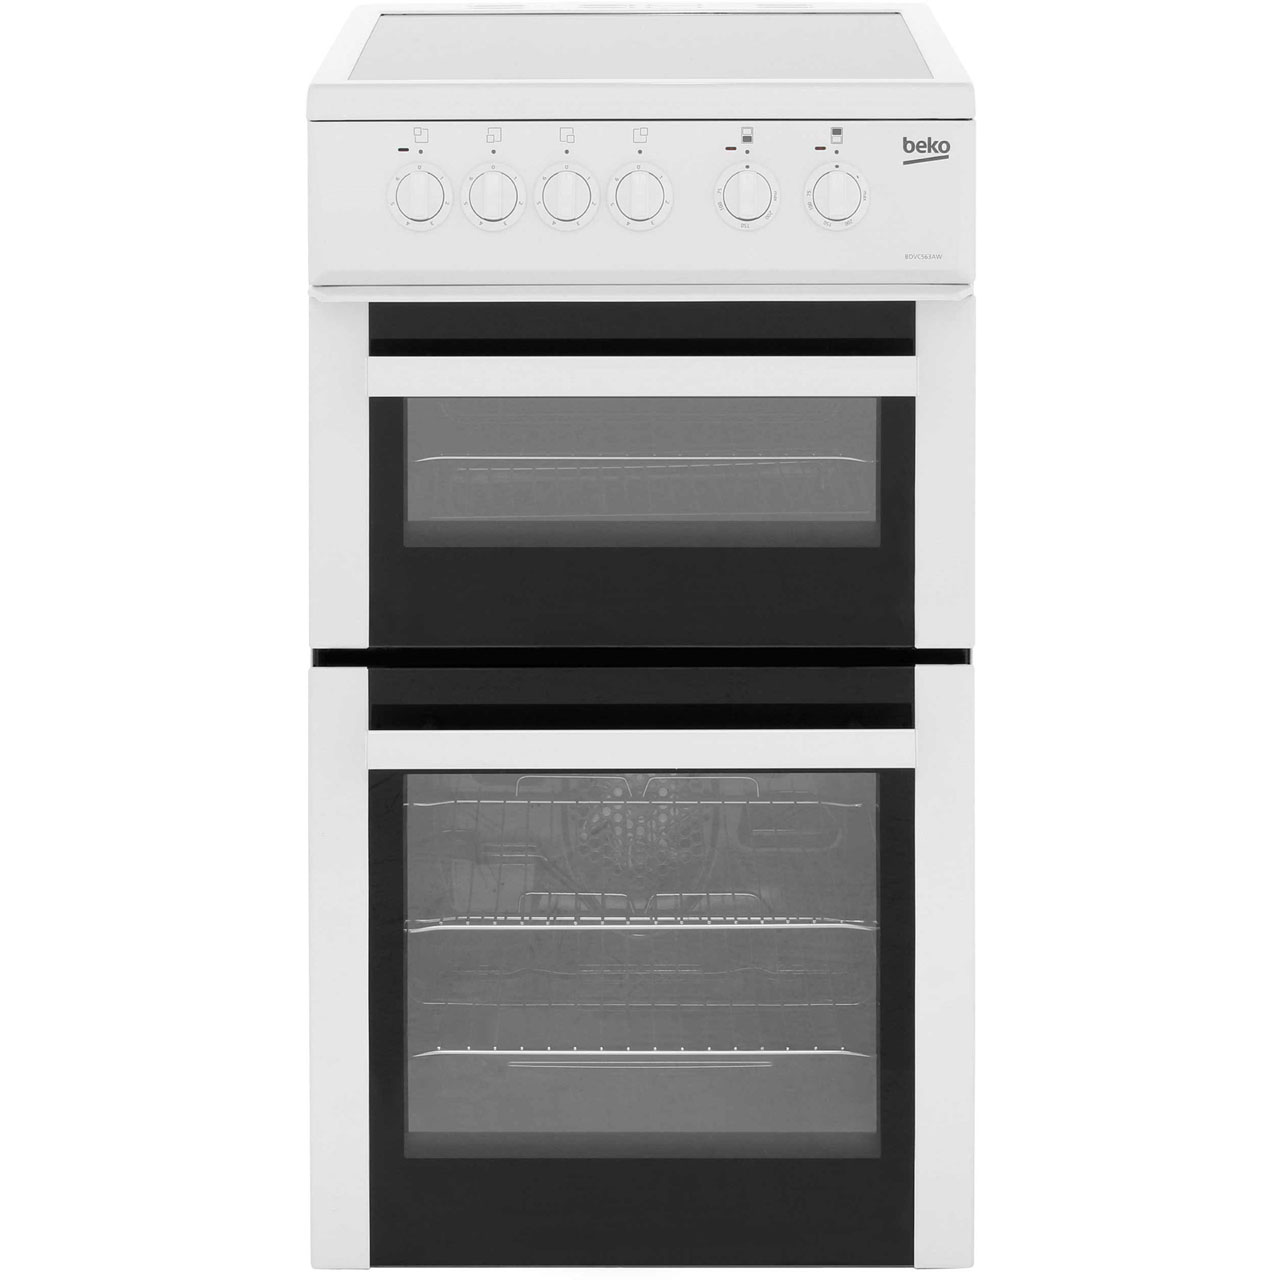 Beko BDVC563AW Electric Cooker with Ceramic Hob - White